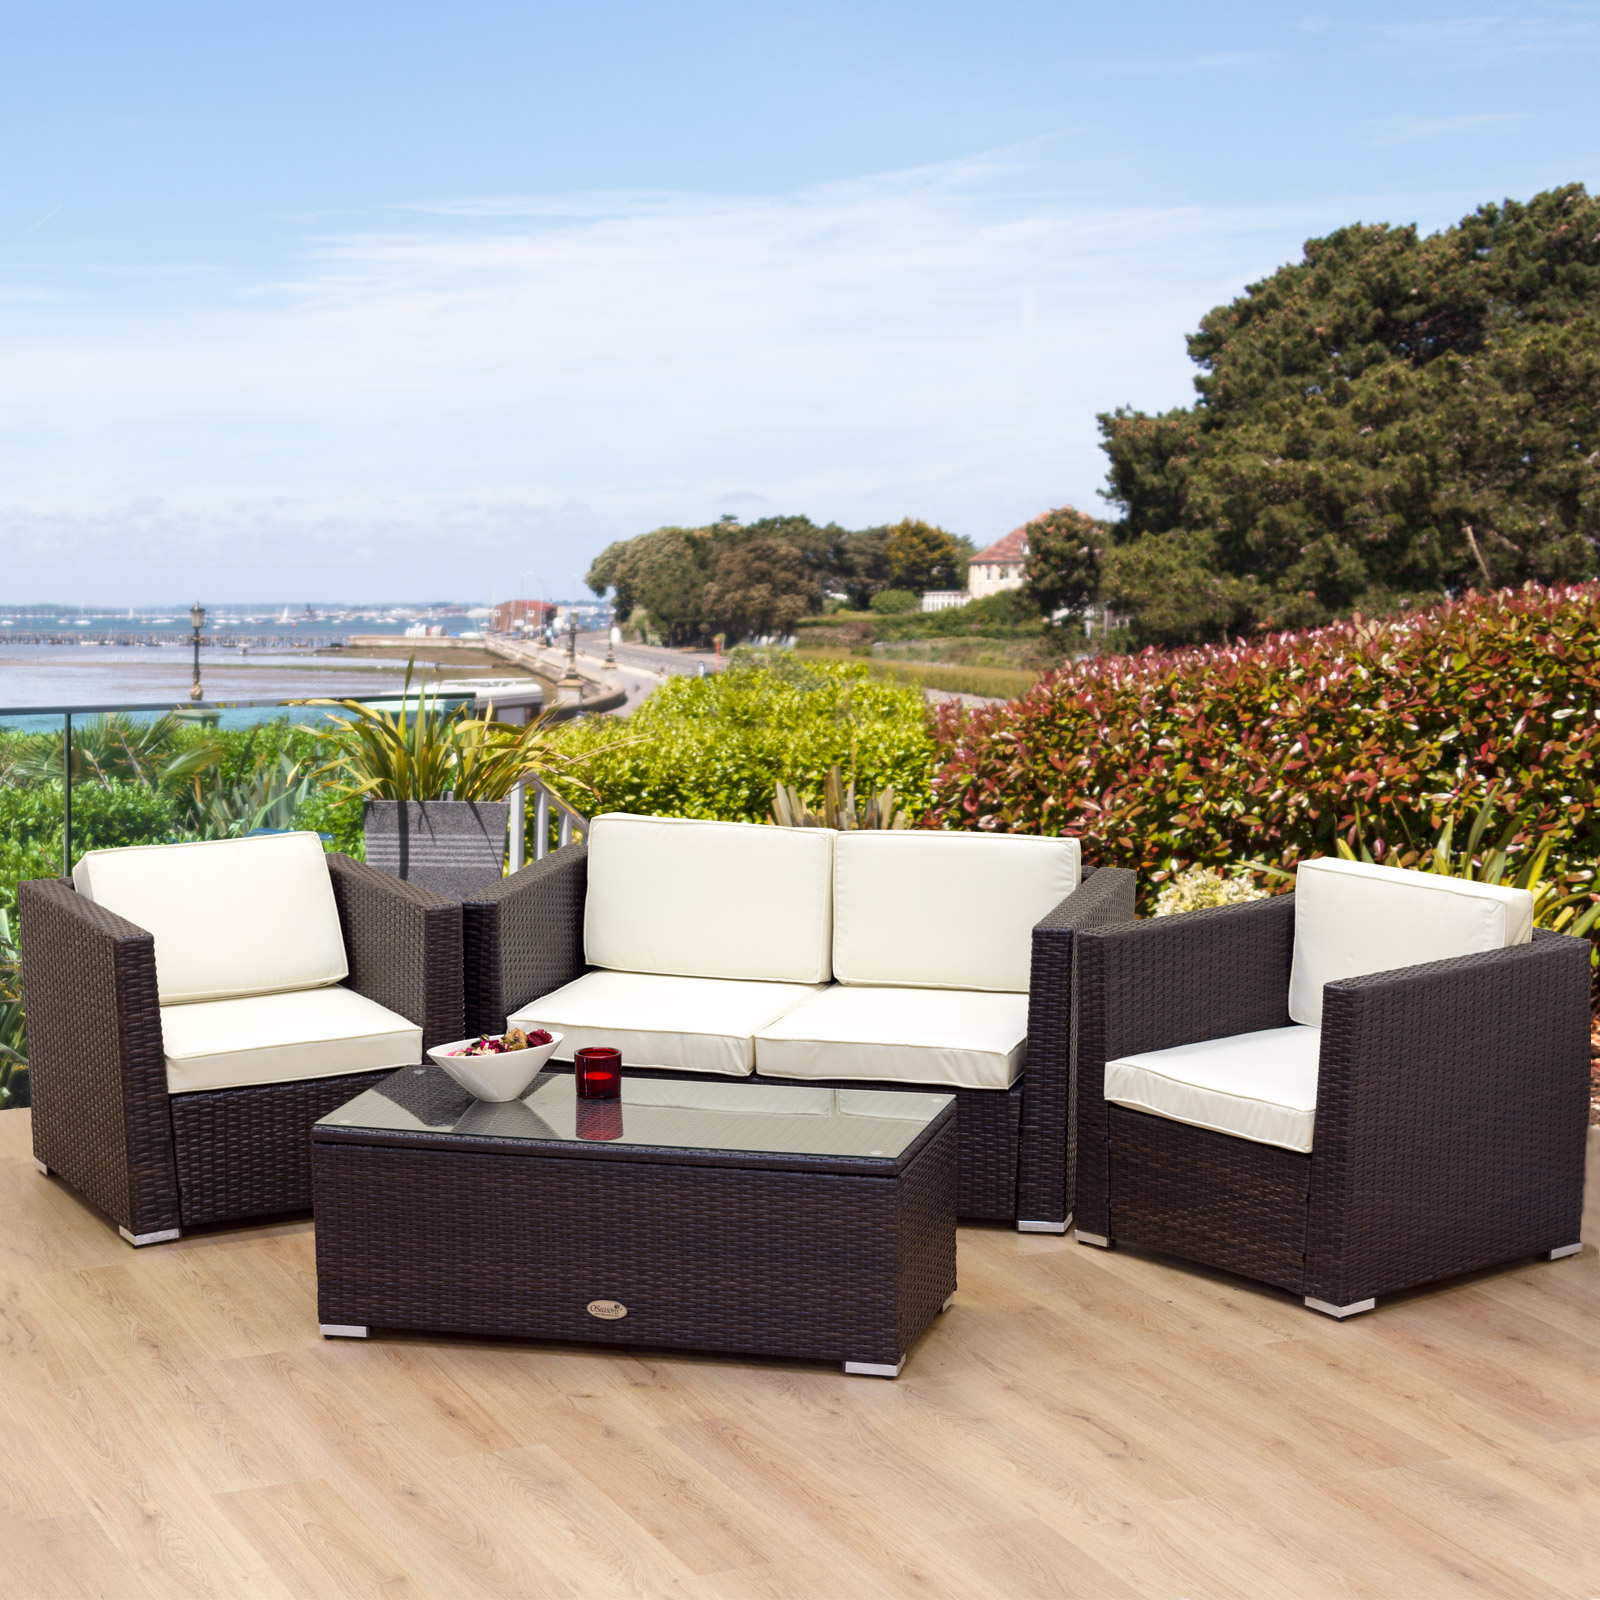 Awesome rattan garden furniture hgnv com for Rattan outdoor furniture